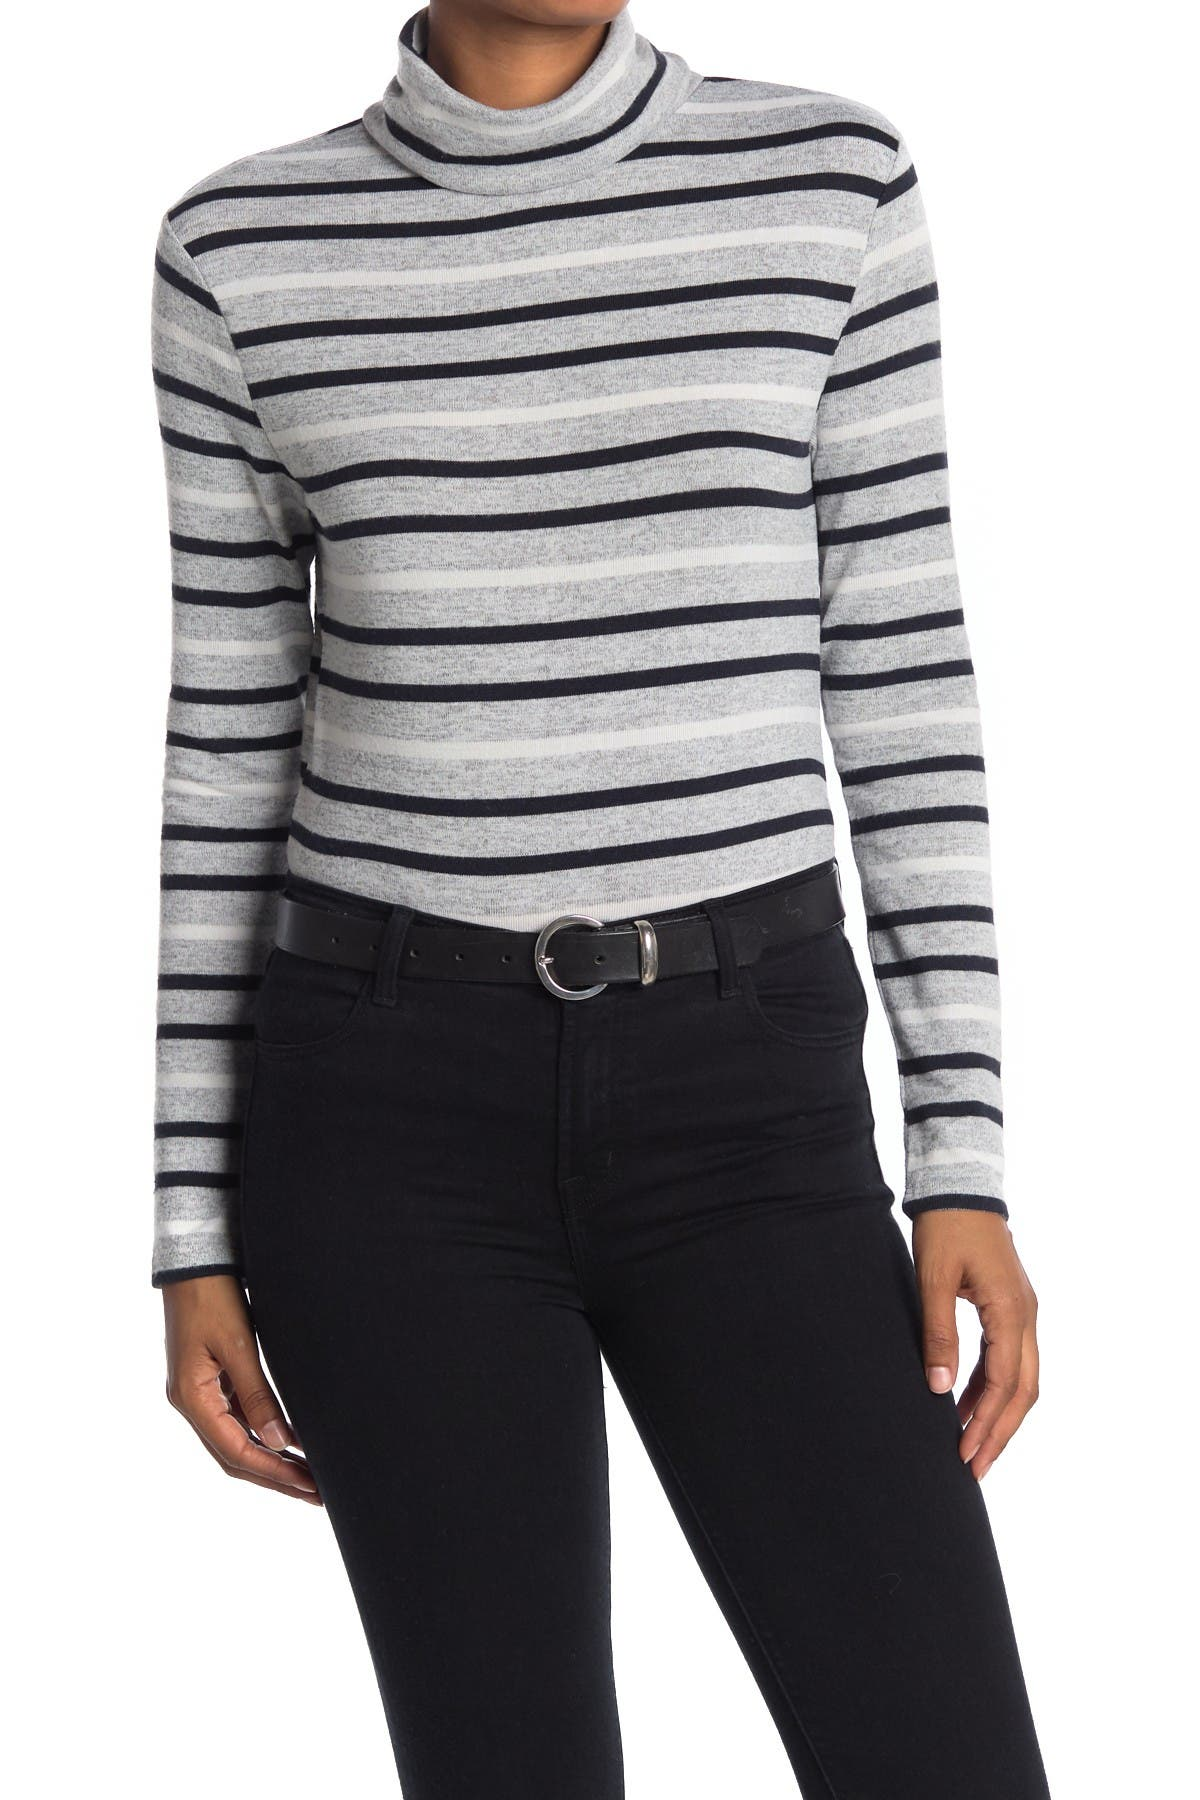 Image of BeachLunchLounge Shayna Striped Turtleneck Hacci Knit Top